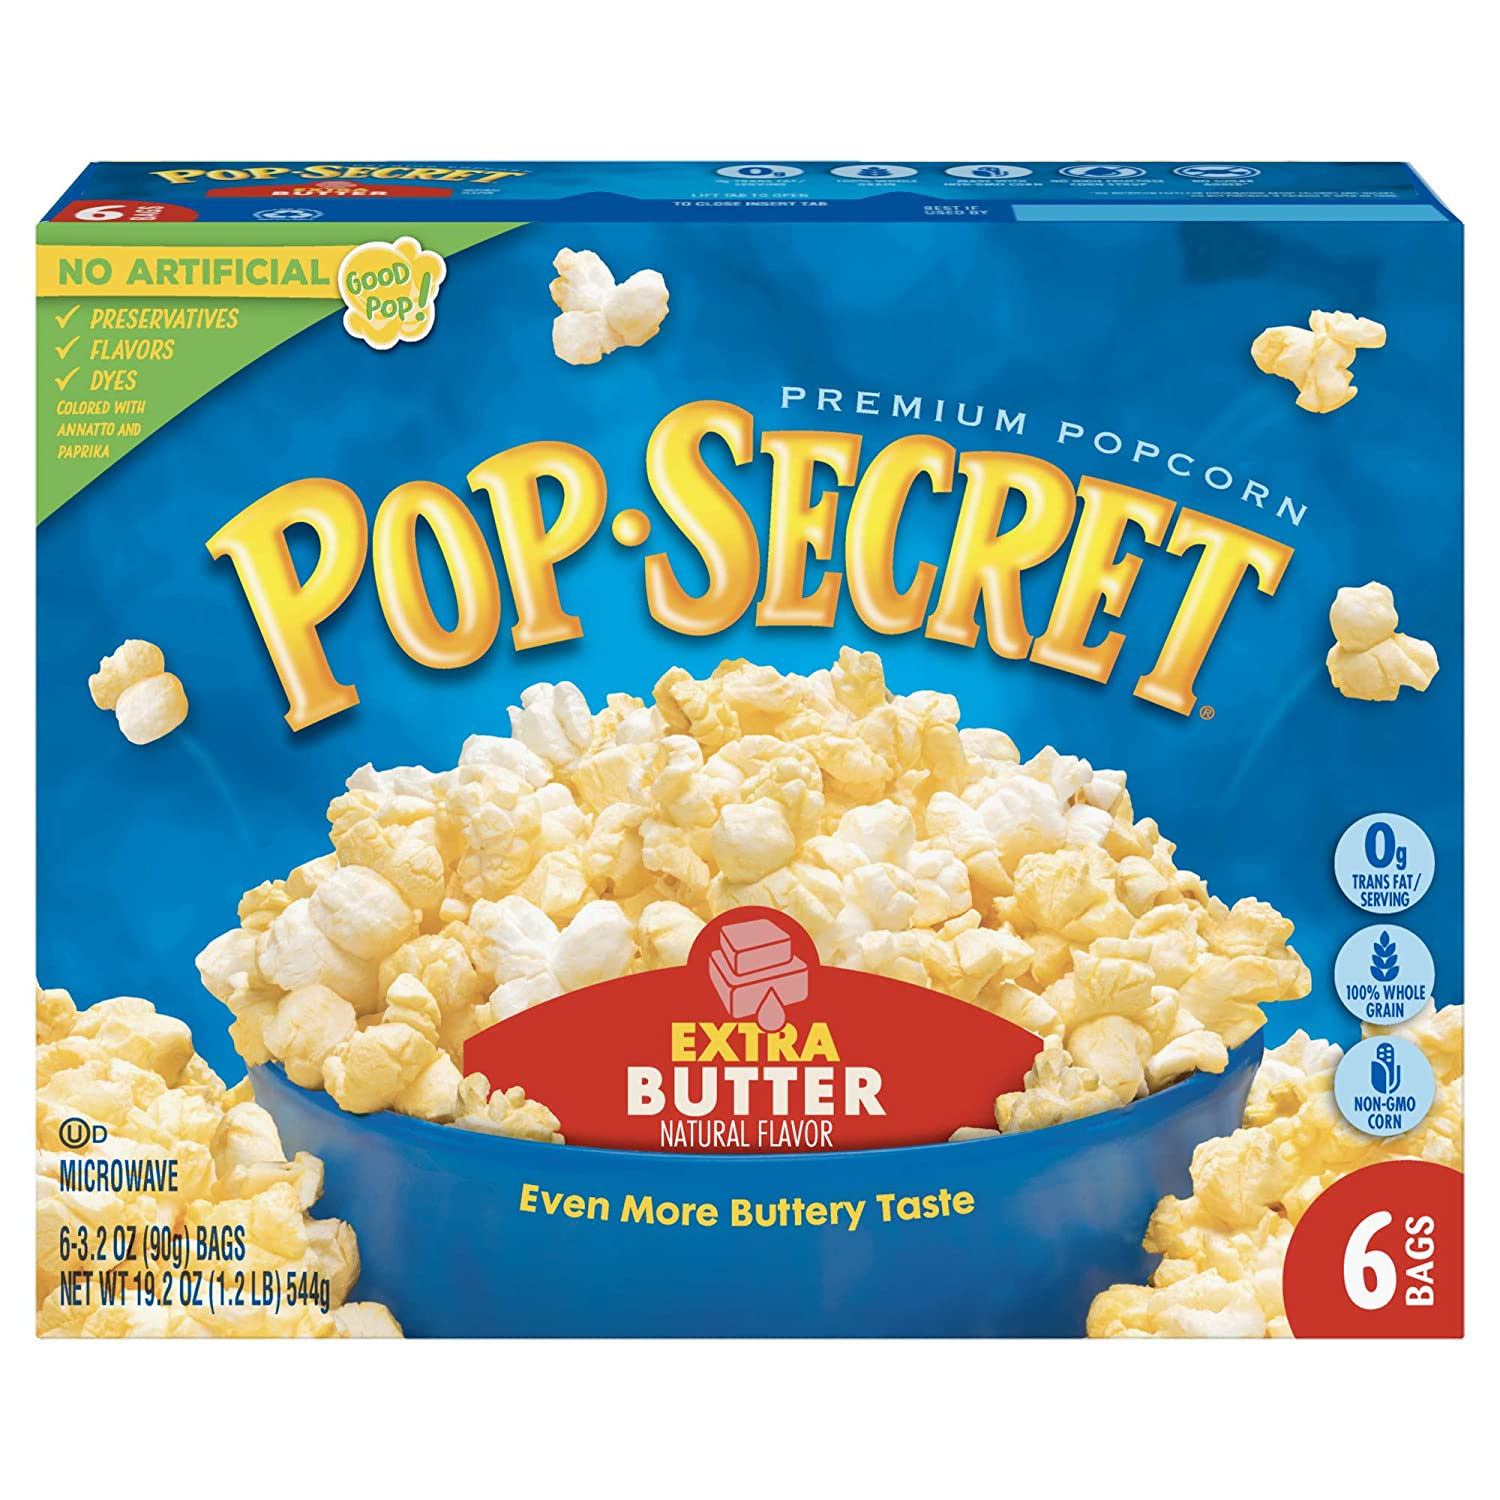 Pop Secret Popcorn National products Extra Butter 3.2 Low price Co Microwave 6 Bags Ounce